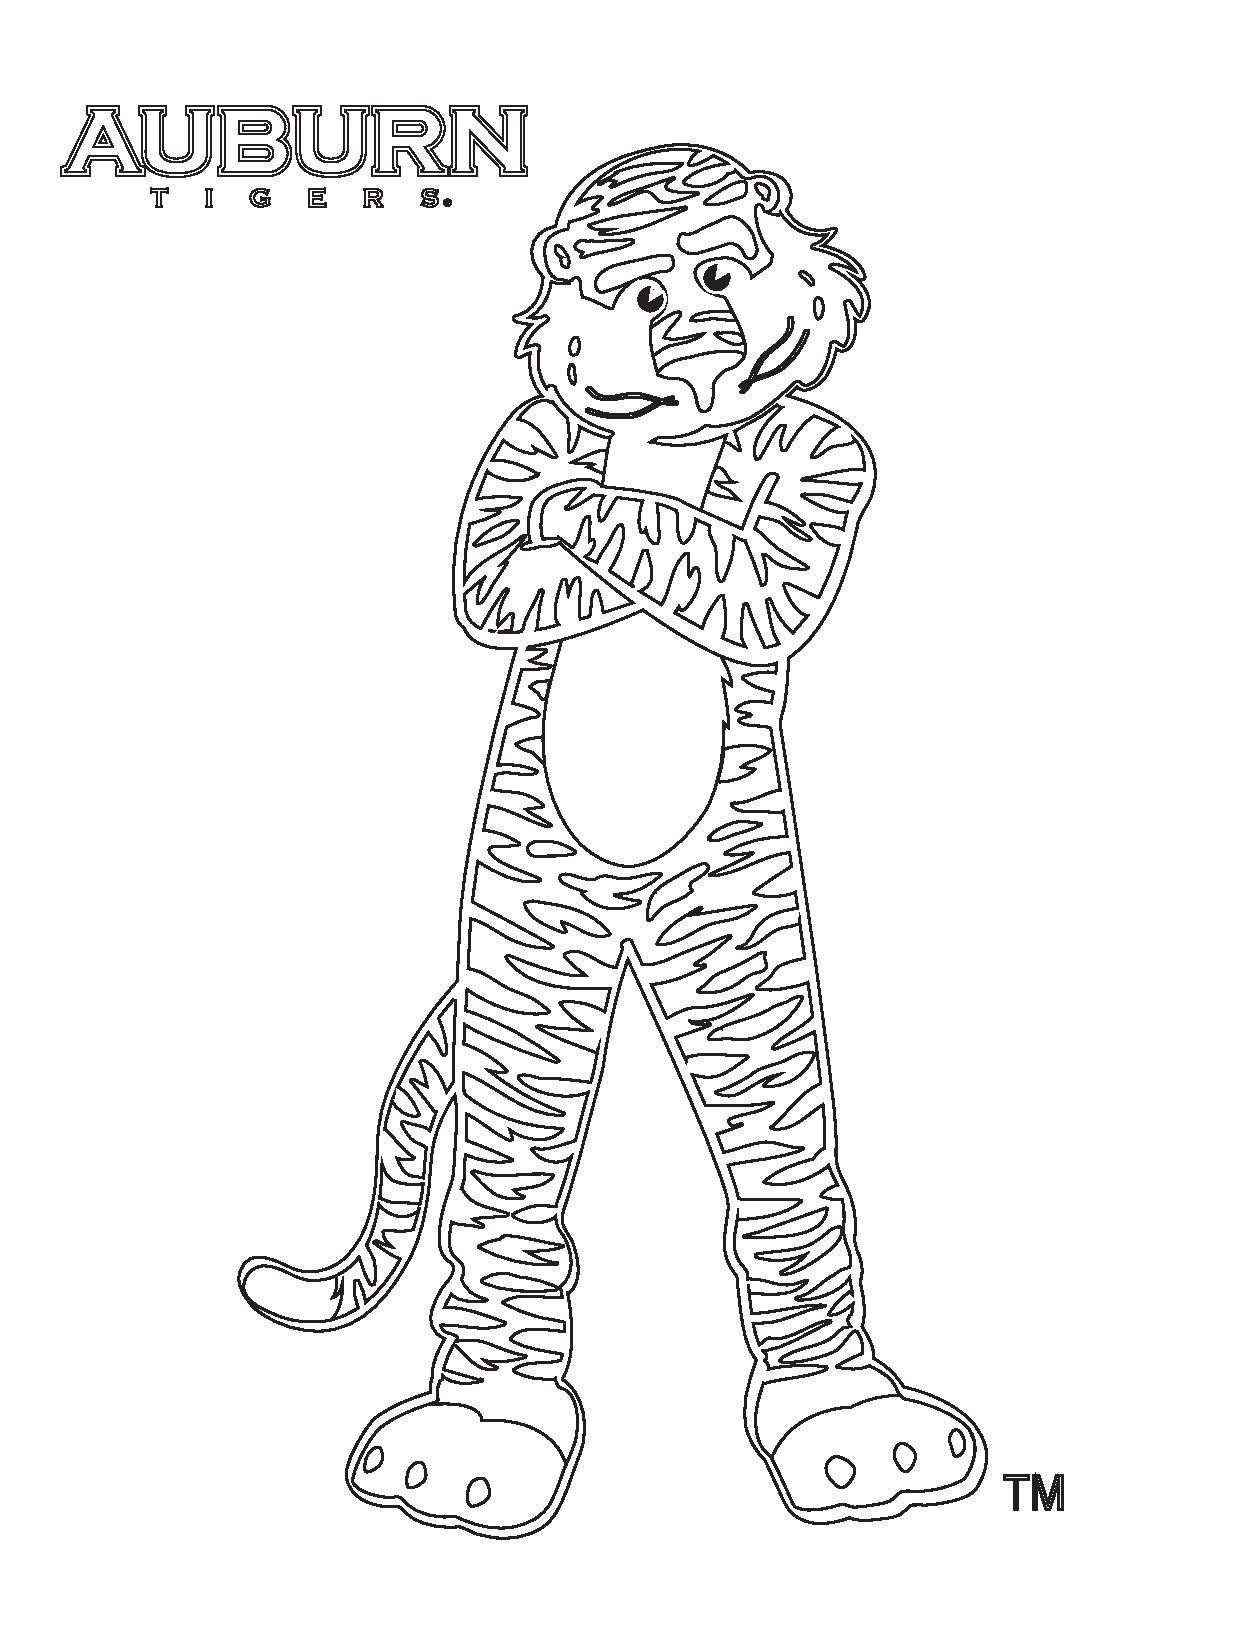 Auburn Coloring Pages What Can I Use Avocado Oil For